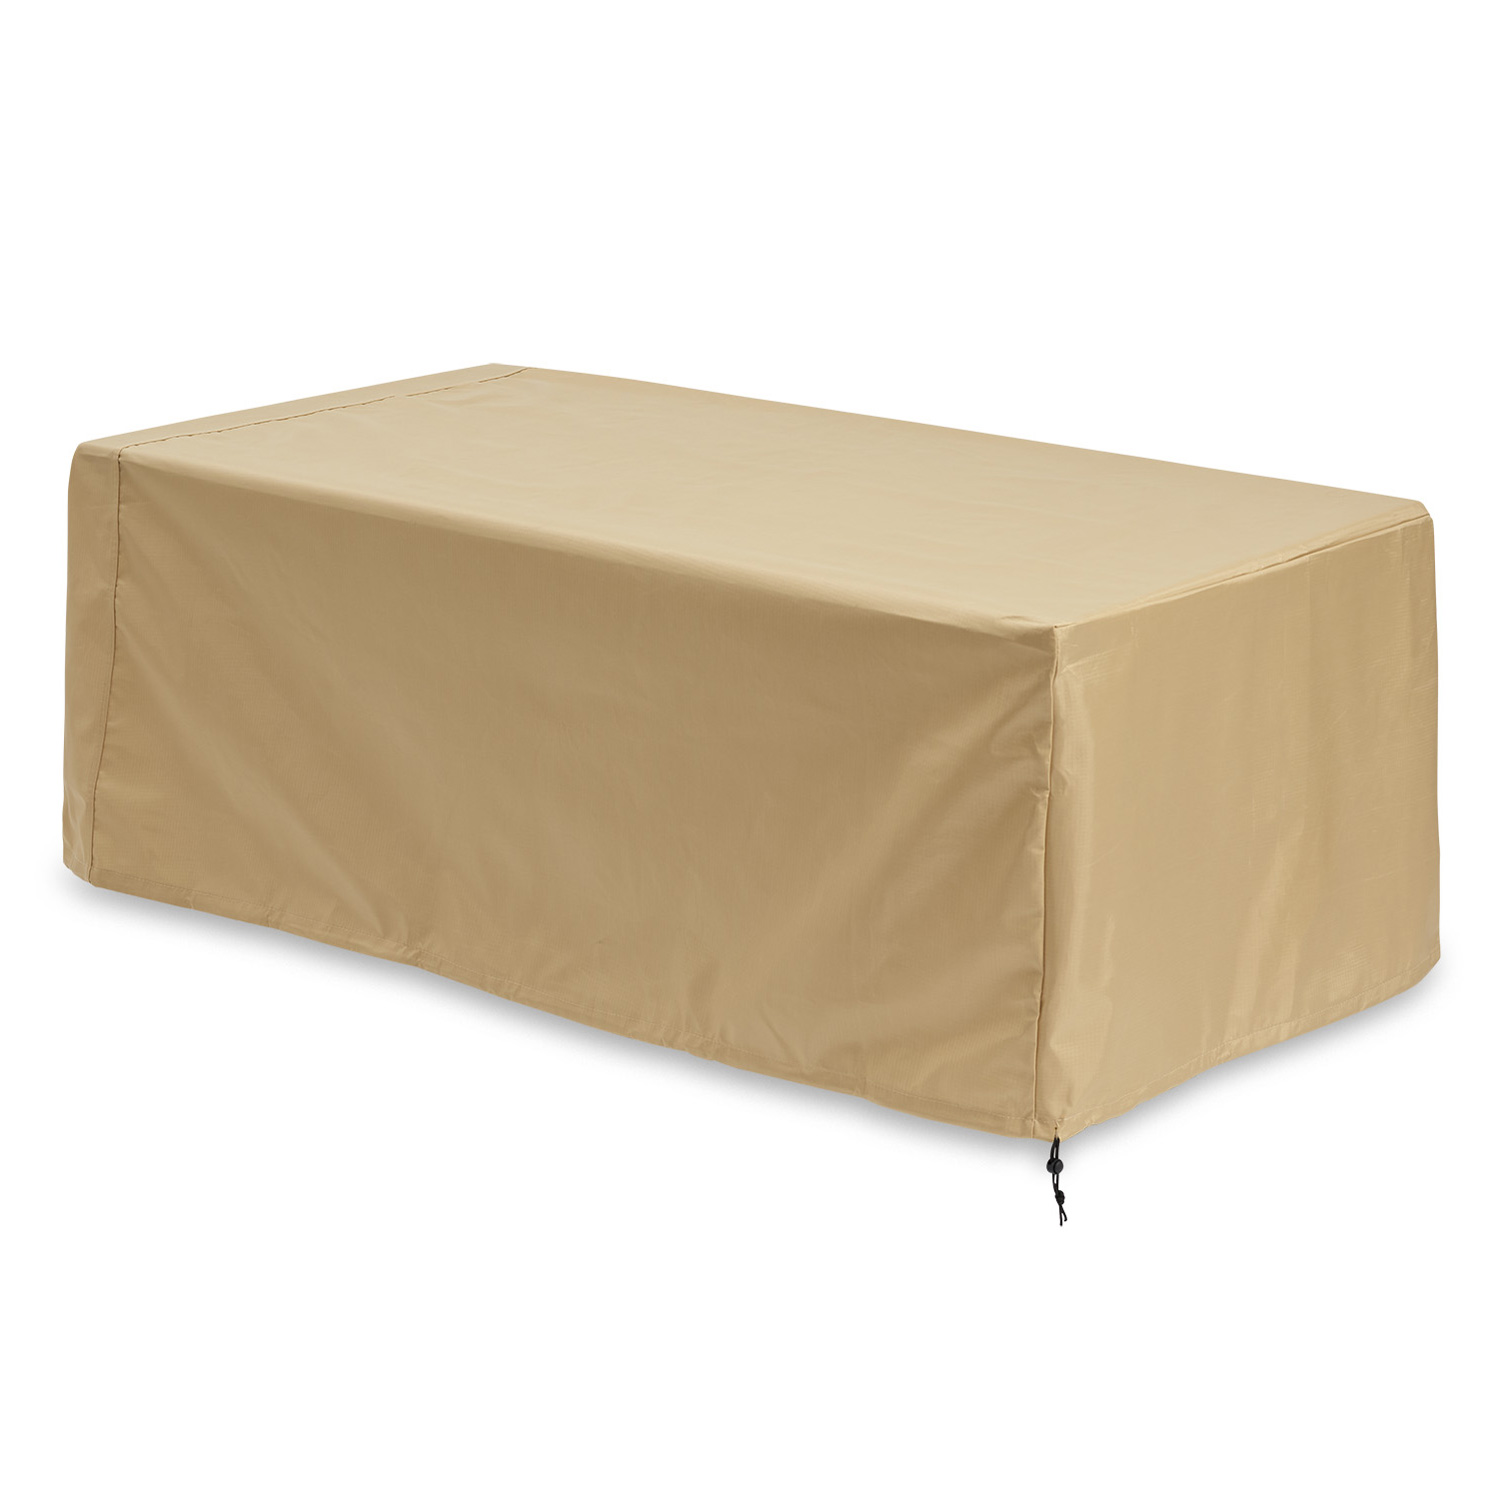 "Linear Tan Protective Cover. (50"" W X 22"" D X 20.75"" H)"